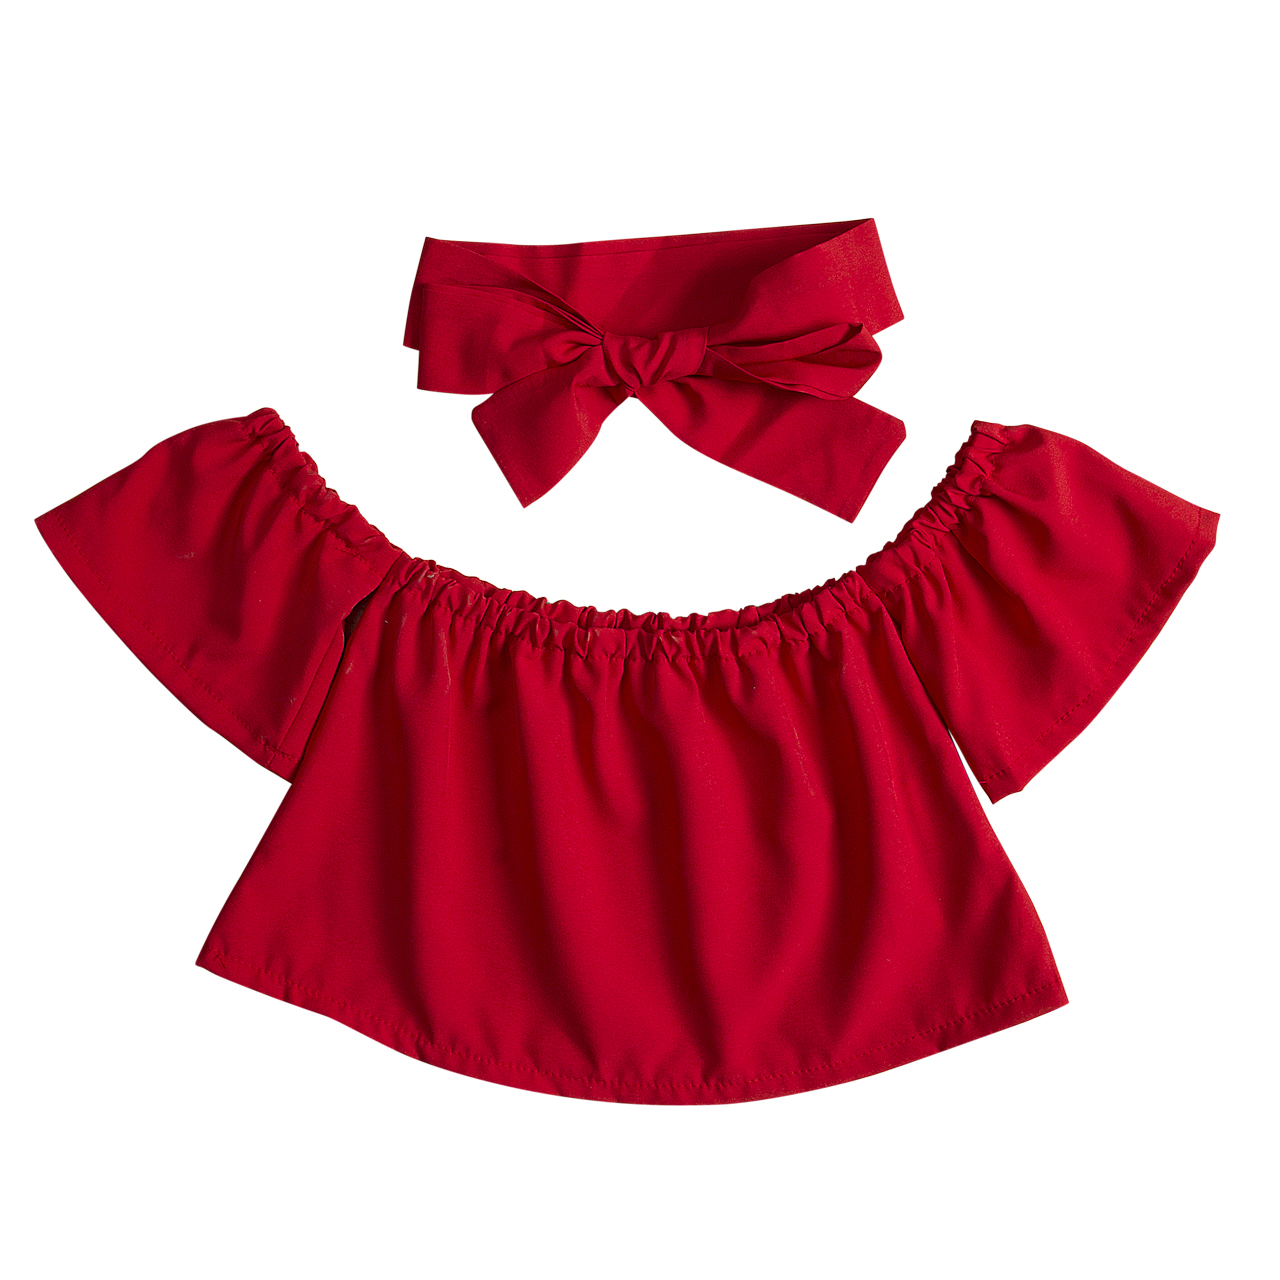 New Fashion Toddler Kids Baby Girl Clothes Off Shoulder Tops+Headband Outfits